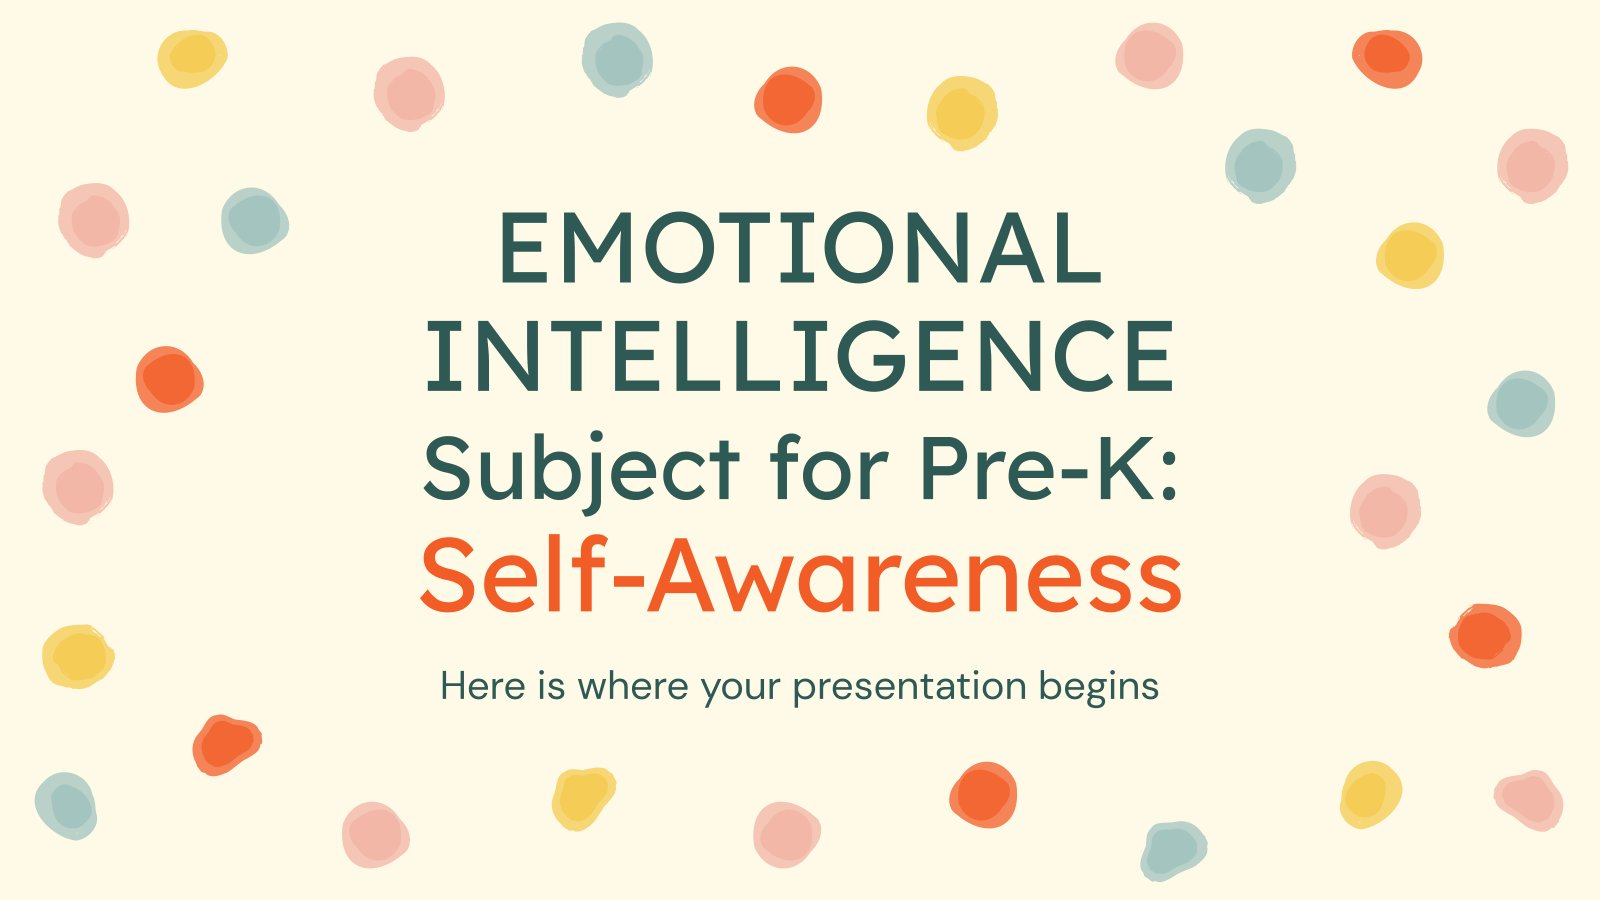 Emotional Intelligence Subject for Pre-K: Self-Awareness presentation template